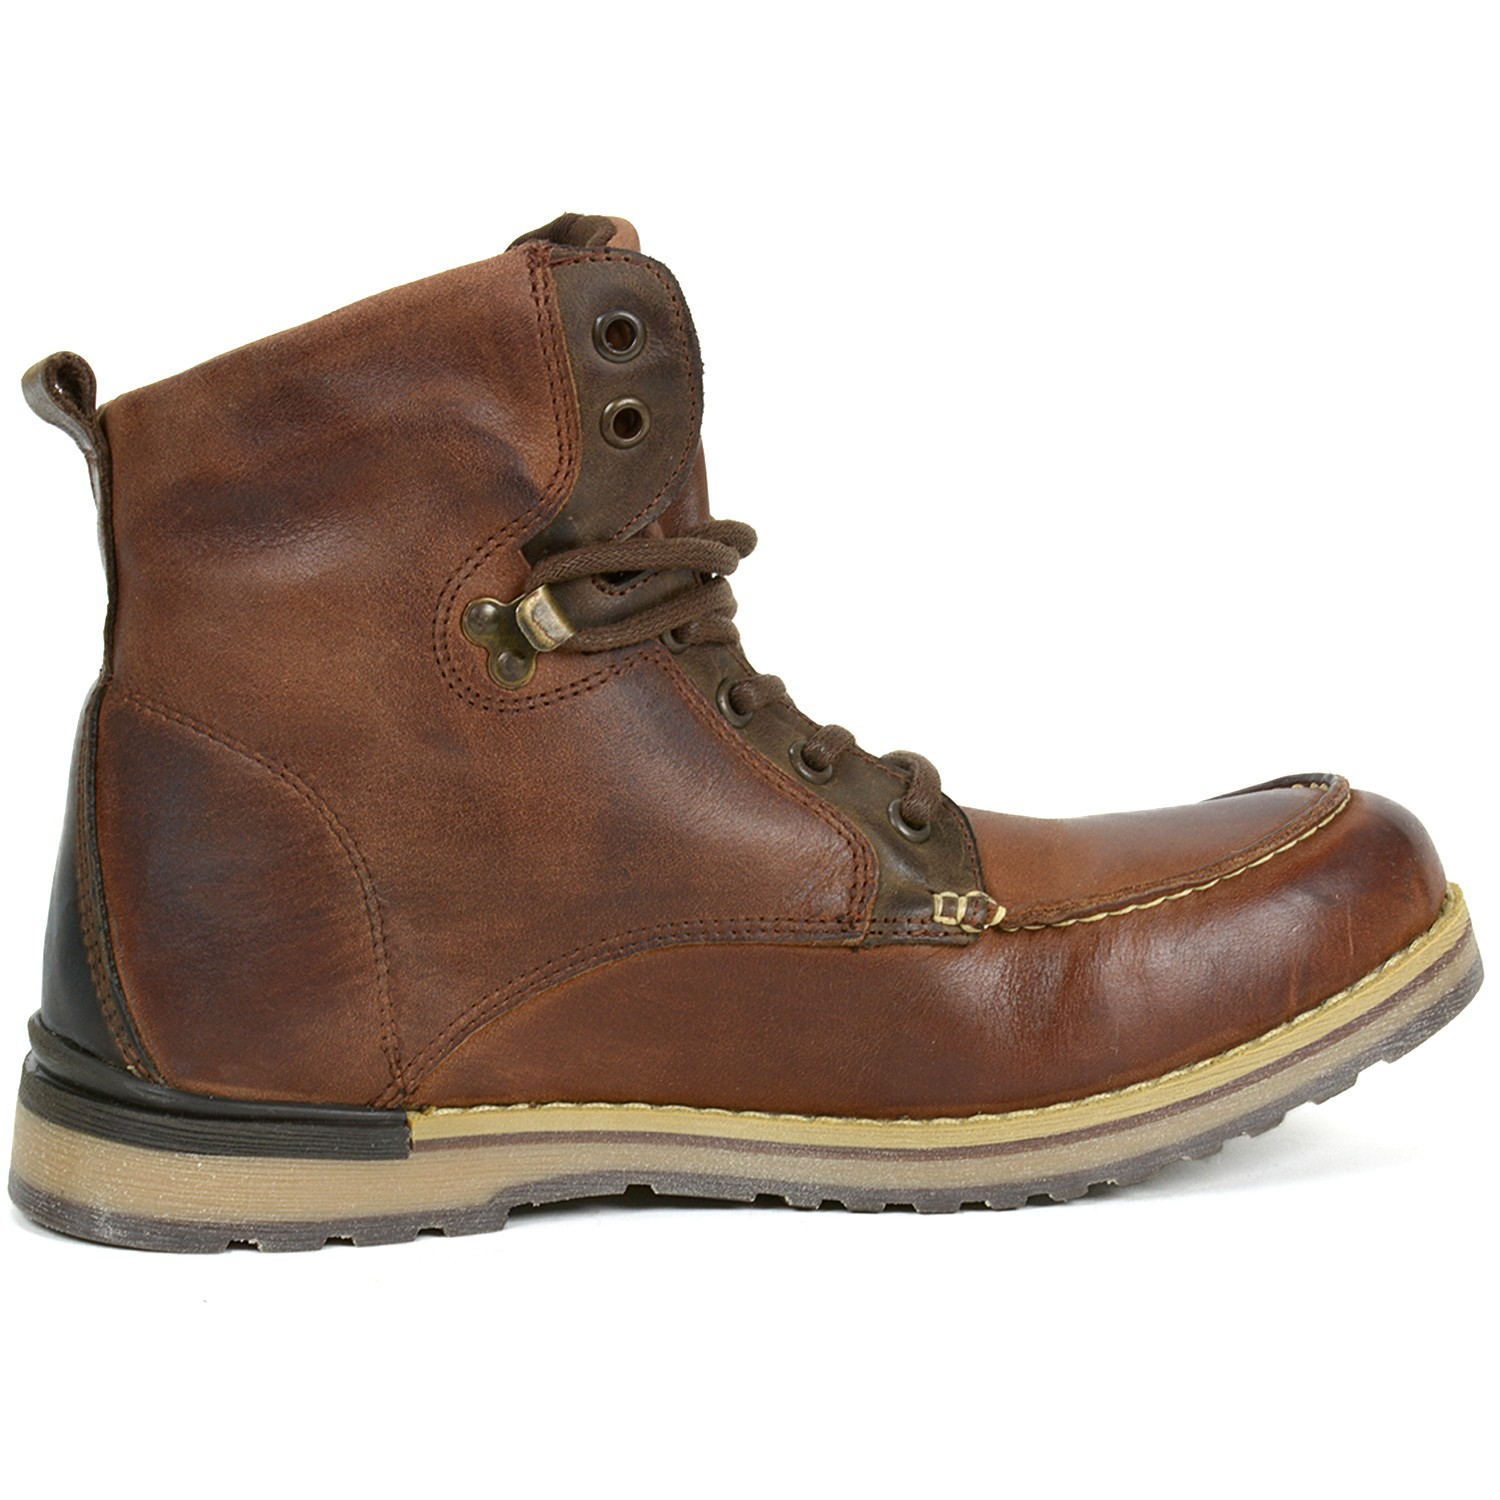 gbx mens draft boots genuine leather moc toe ankle high